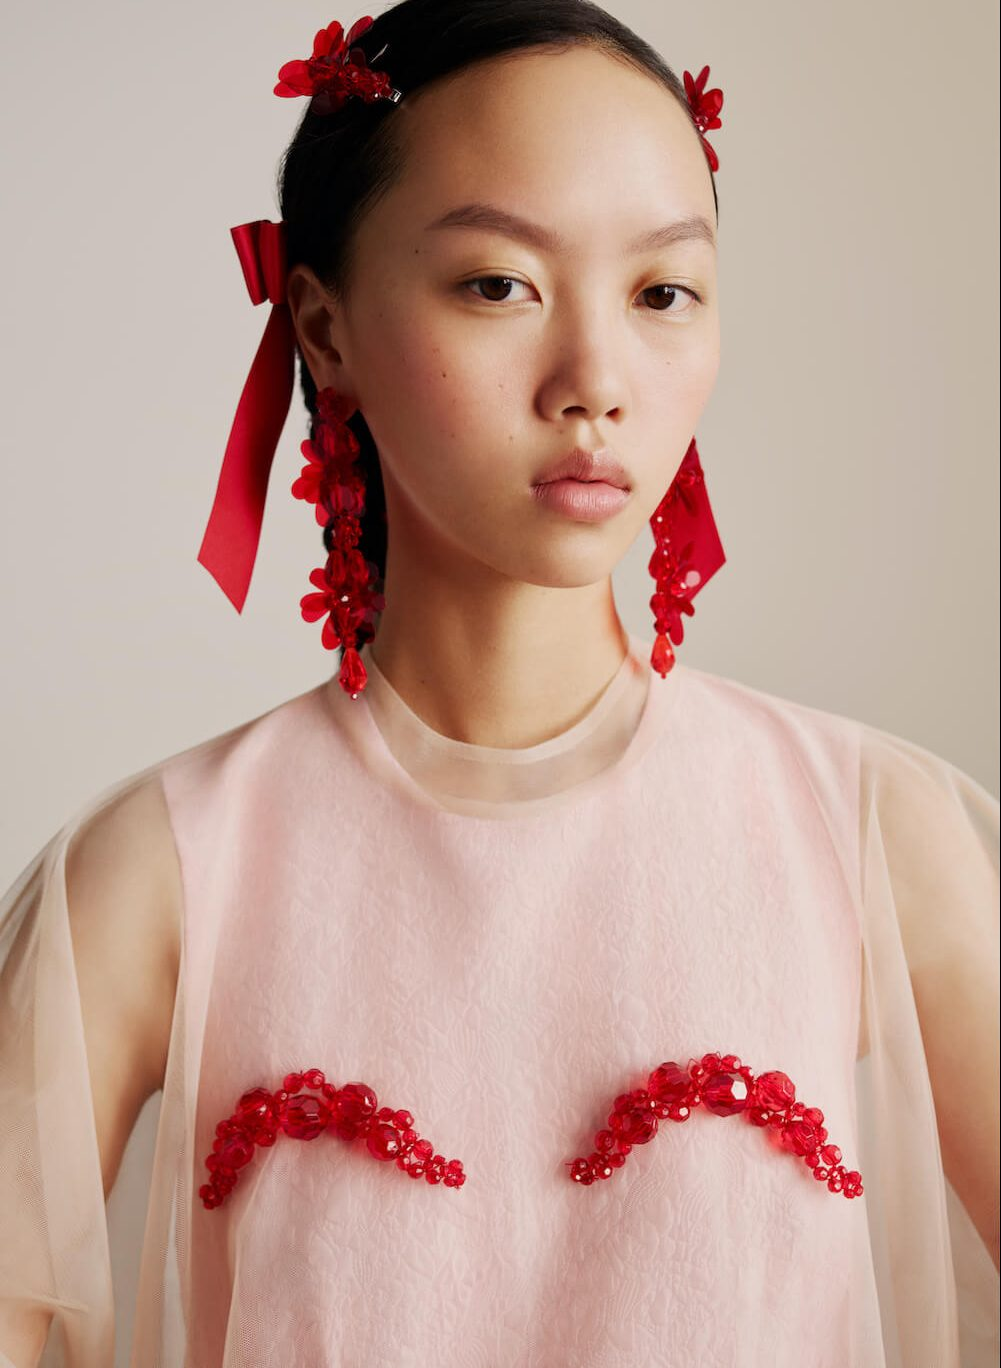 Simone Rocha x H&M is finally on sale - here's what to buy from the collection